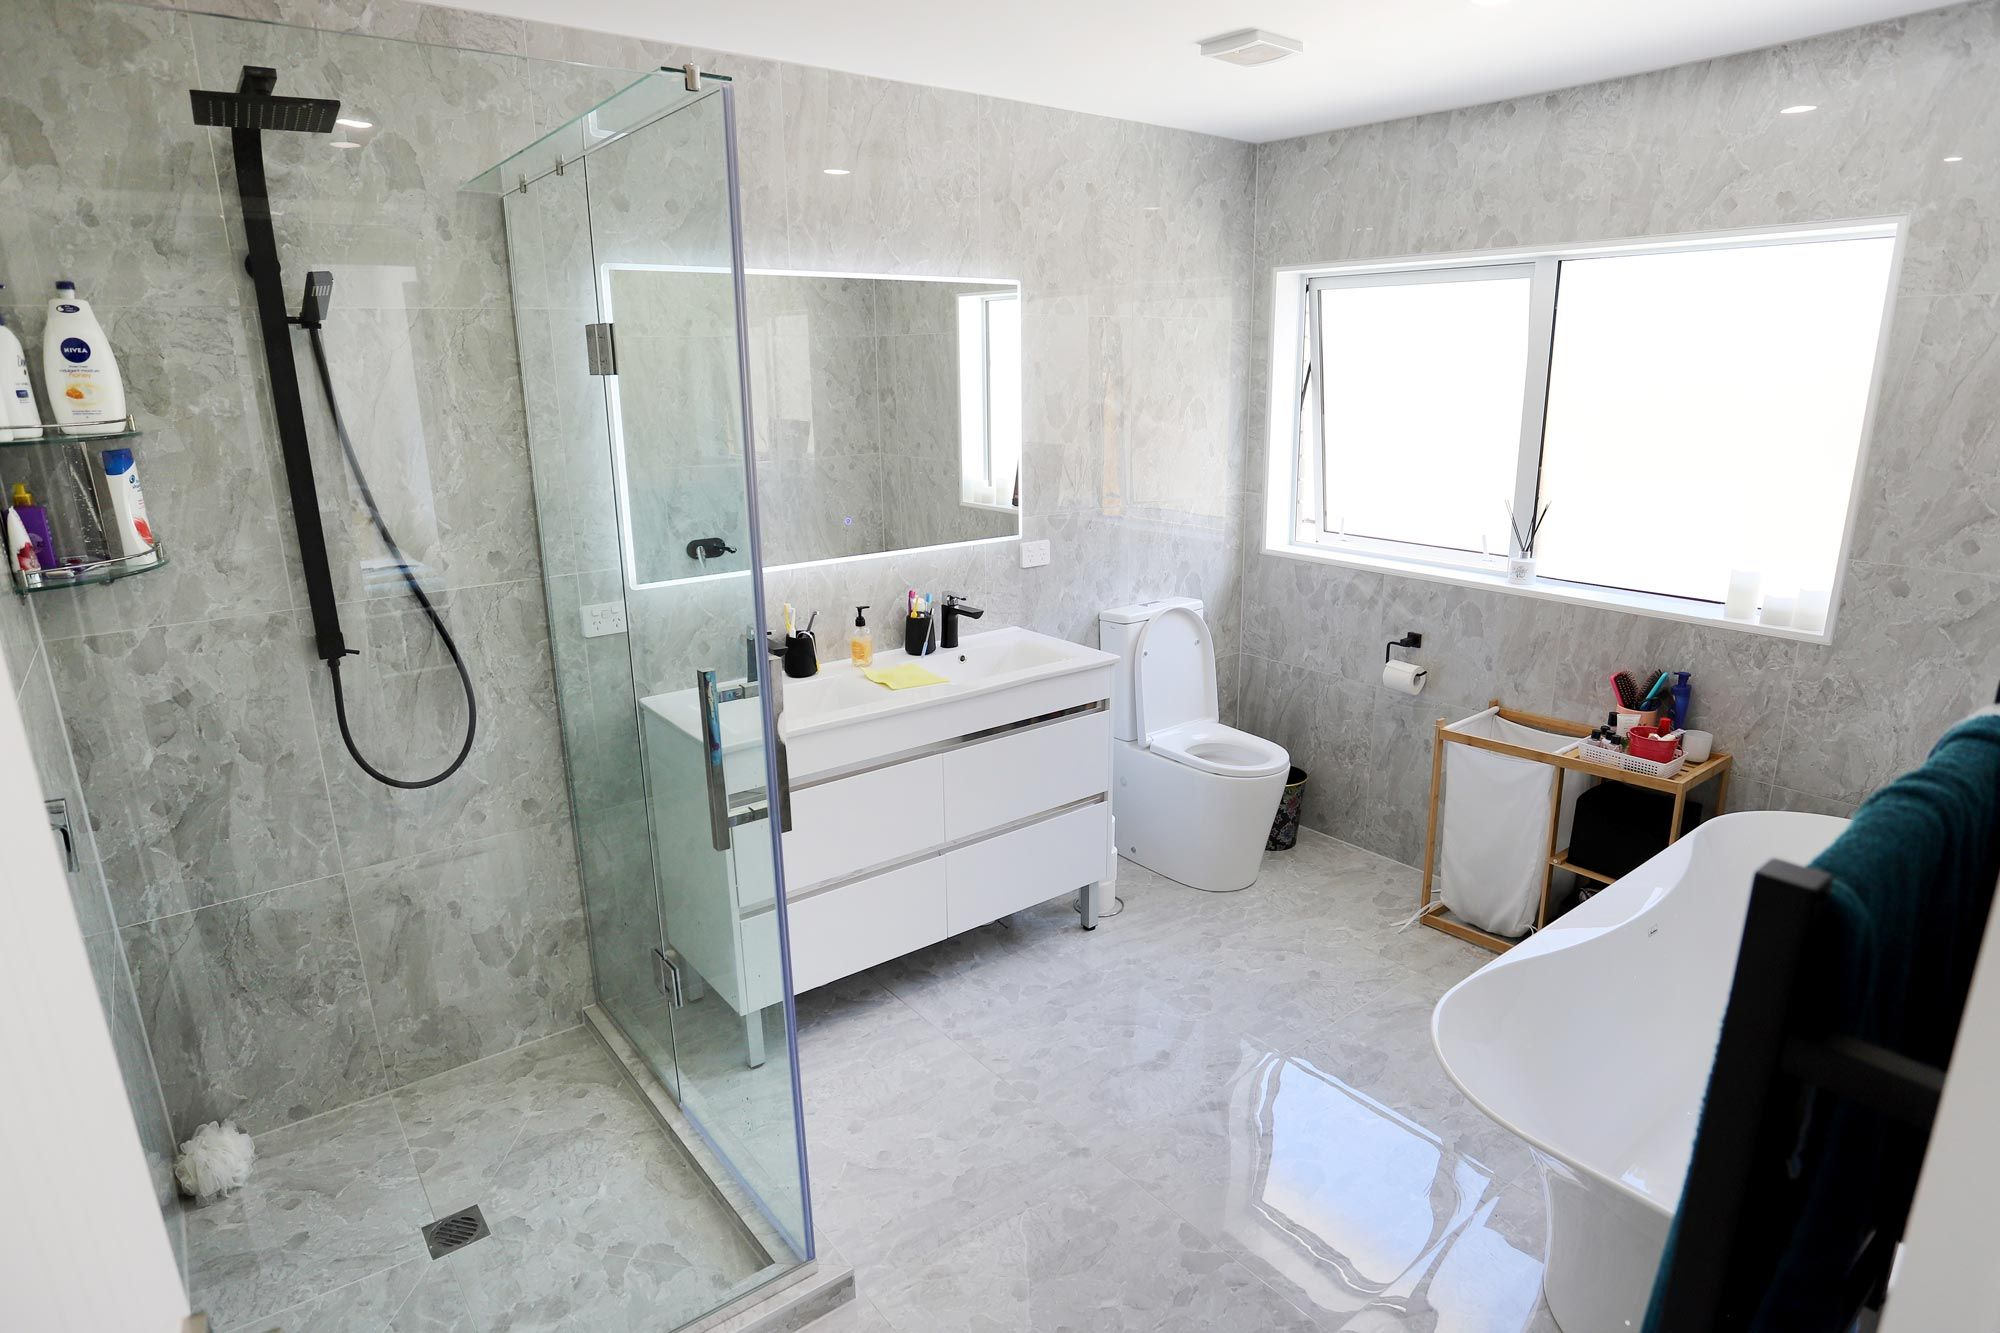 Thinking Of Renovating Your Bathroom The Team At Superior Renovations Has Put Together A Cost Calcula In 2020 Bathroom Renovation Cost Bathroom Renovation Renovations